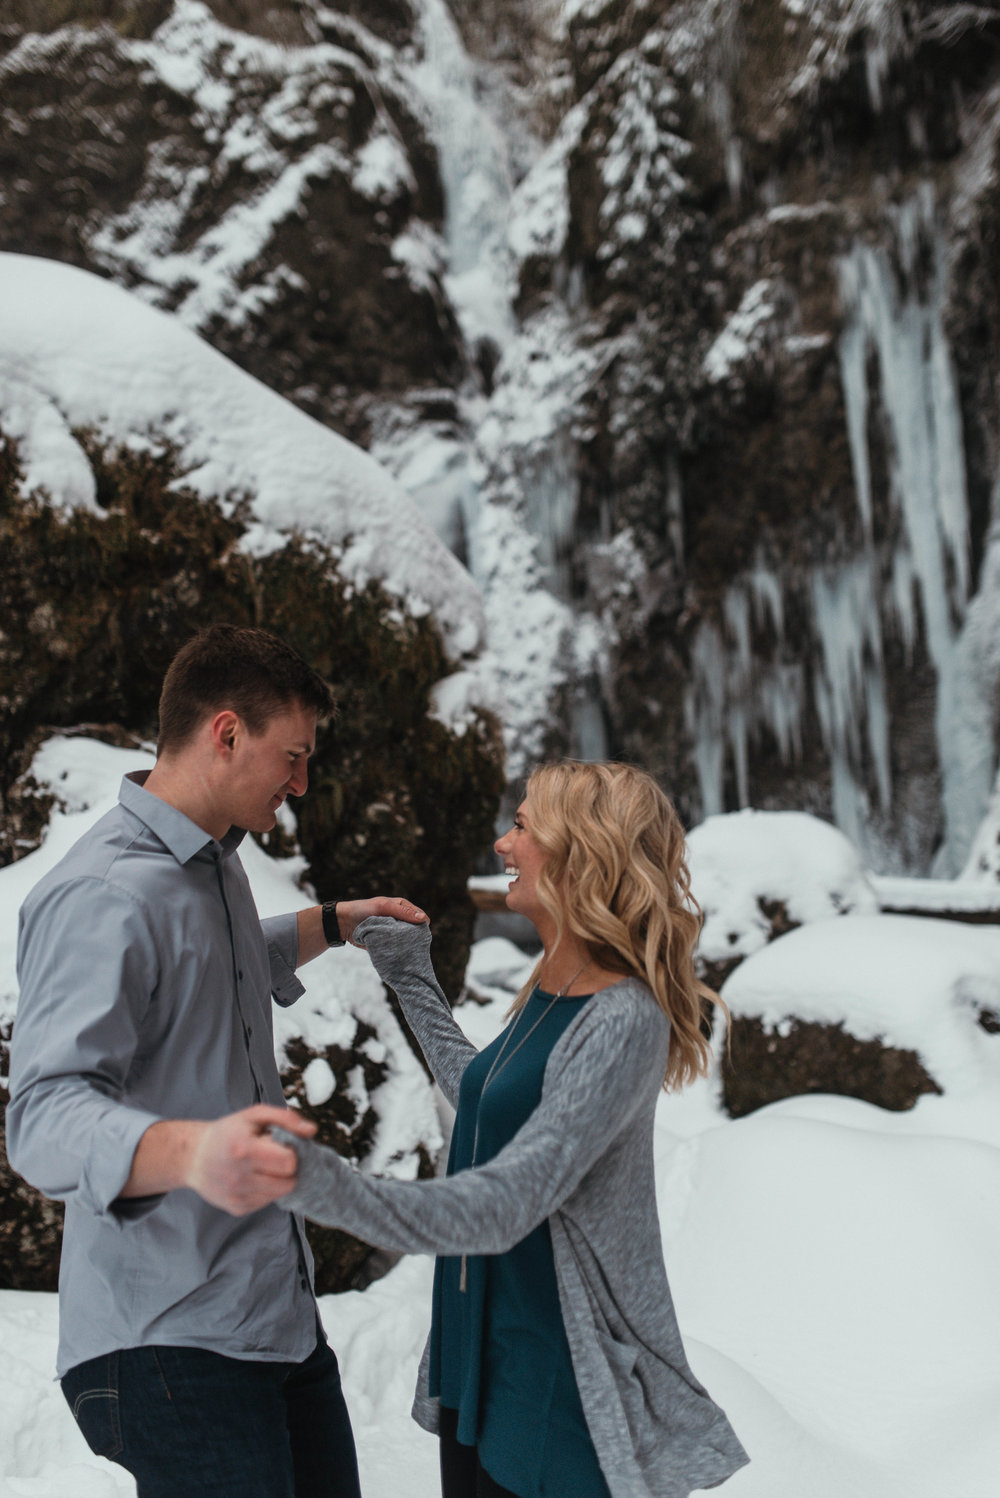 Snow Engagement Photos | Columbia River Gorge Engagment Session | Engagement Photo Ideas | Snow Engagement Session | Engagement Poses | Winter Engagement Session | Jessicaheronimages.com